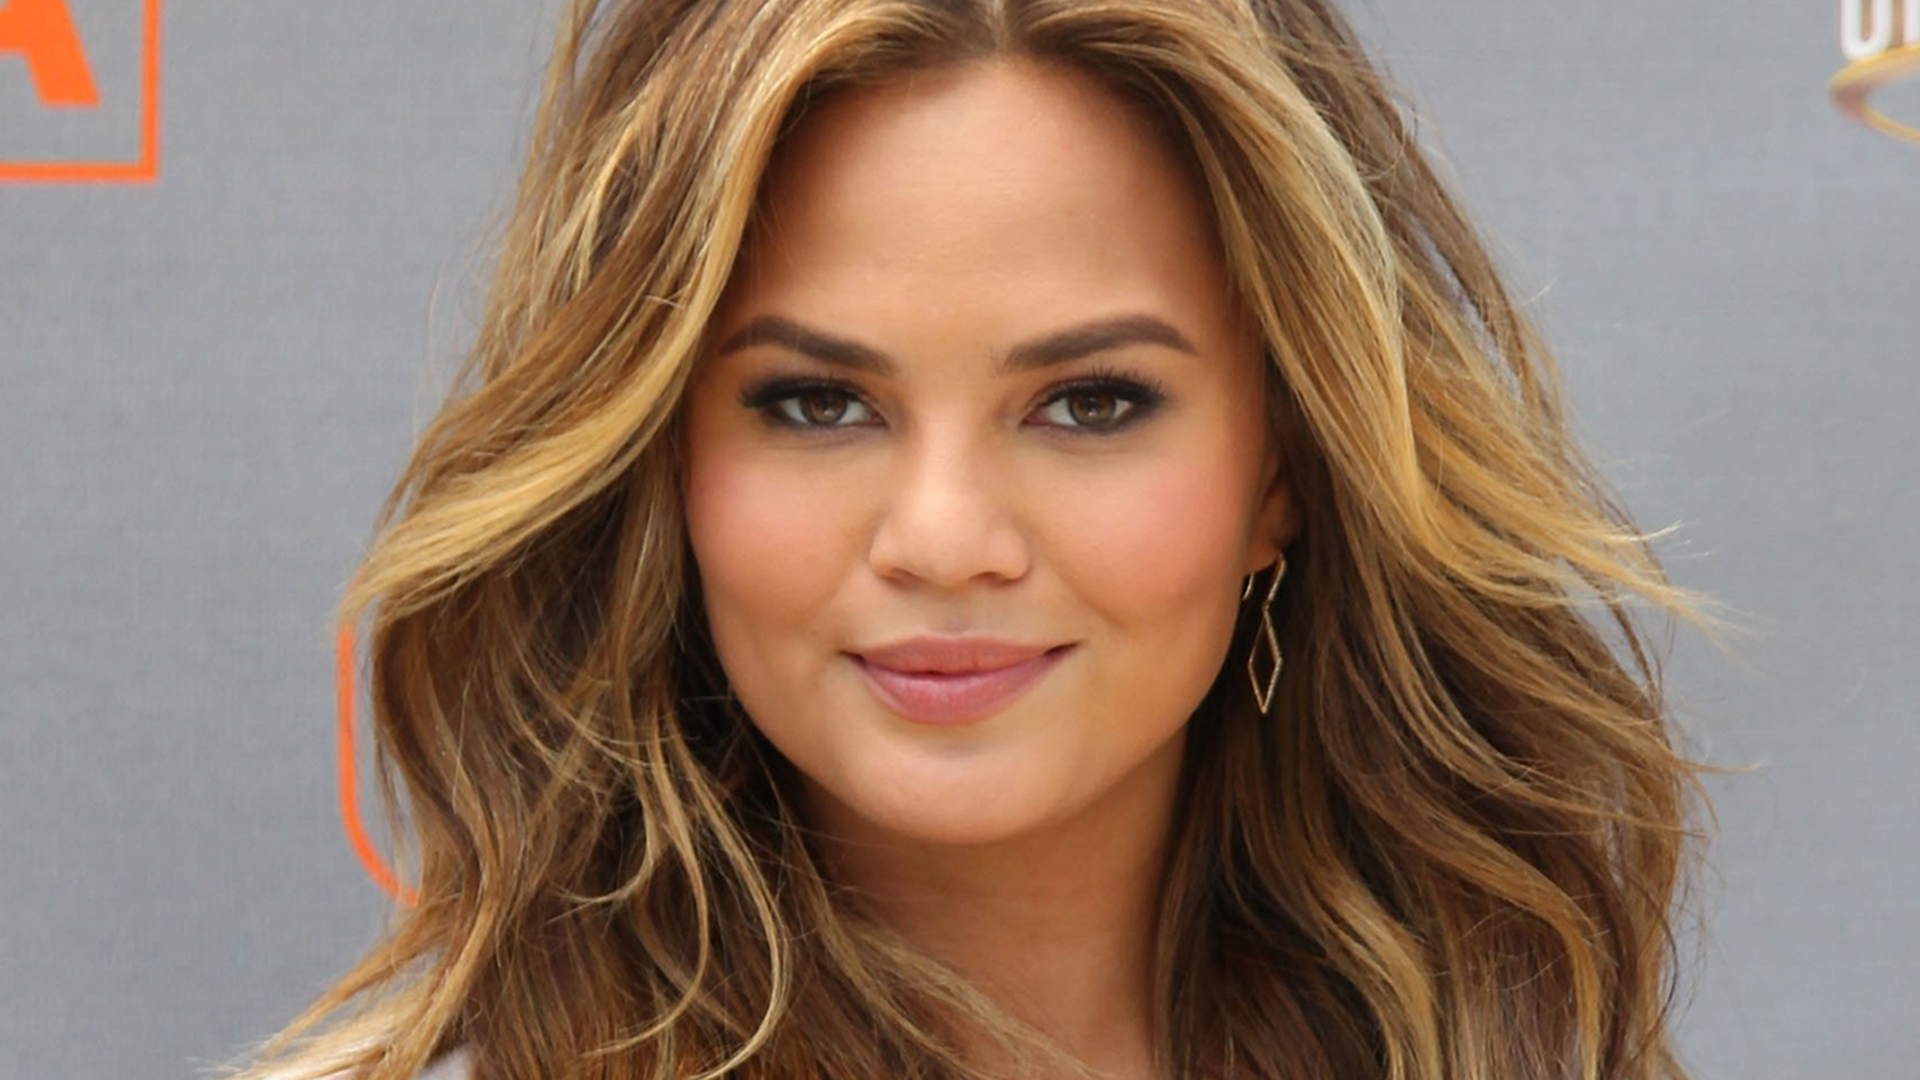 Supermodel, television personality, wife, and mother, Chrissy Teigen, has gained her influence and large fan base simply by being extremely relatable. She has over 5 million Twitter followers with whom she shares everything from her political views to personal anecdotes about motherhood and her marriage to renowned singer John Legend.